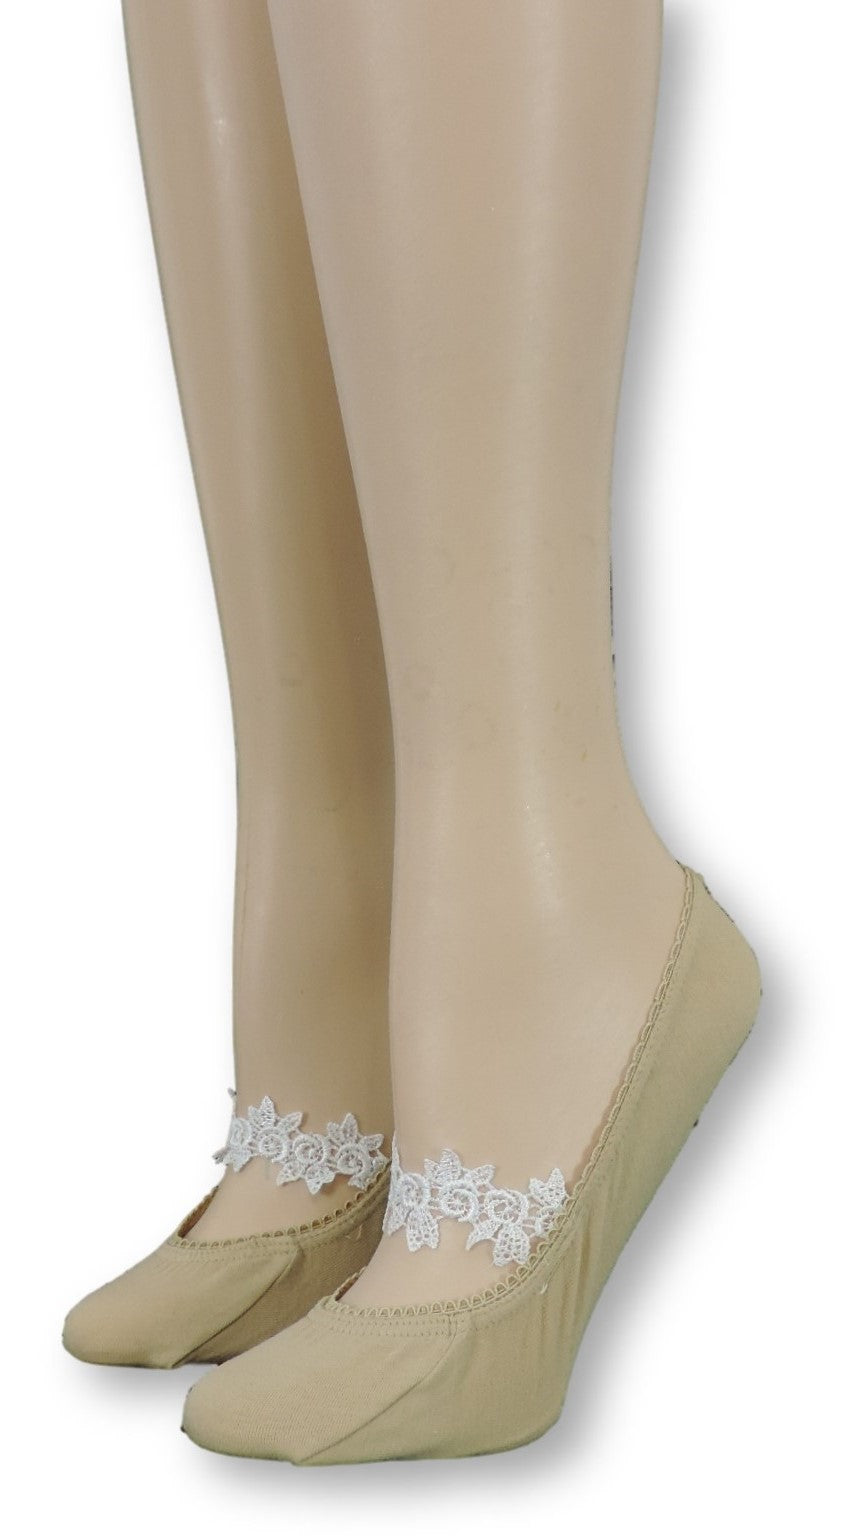 Beige Ankle Socks with Floral Lace